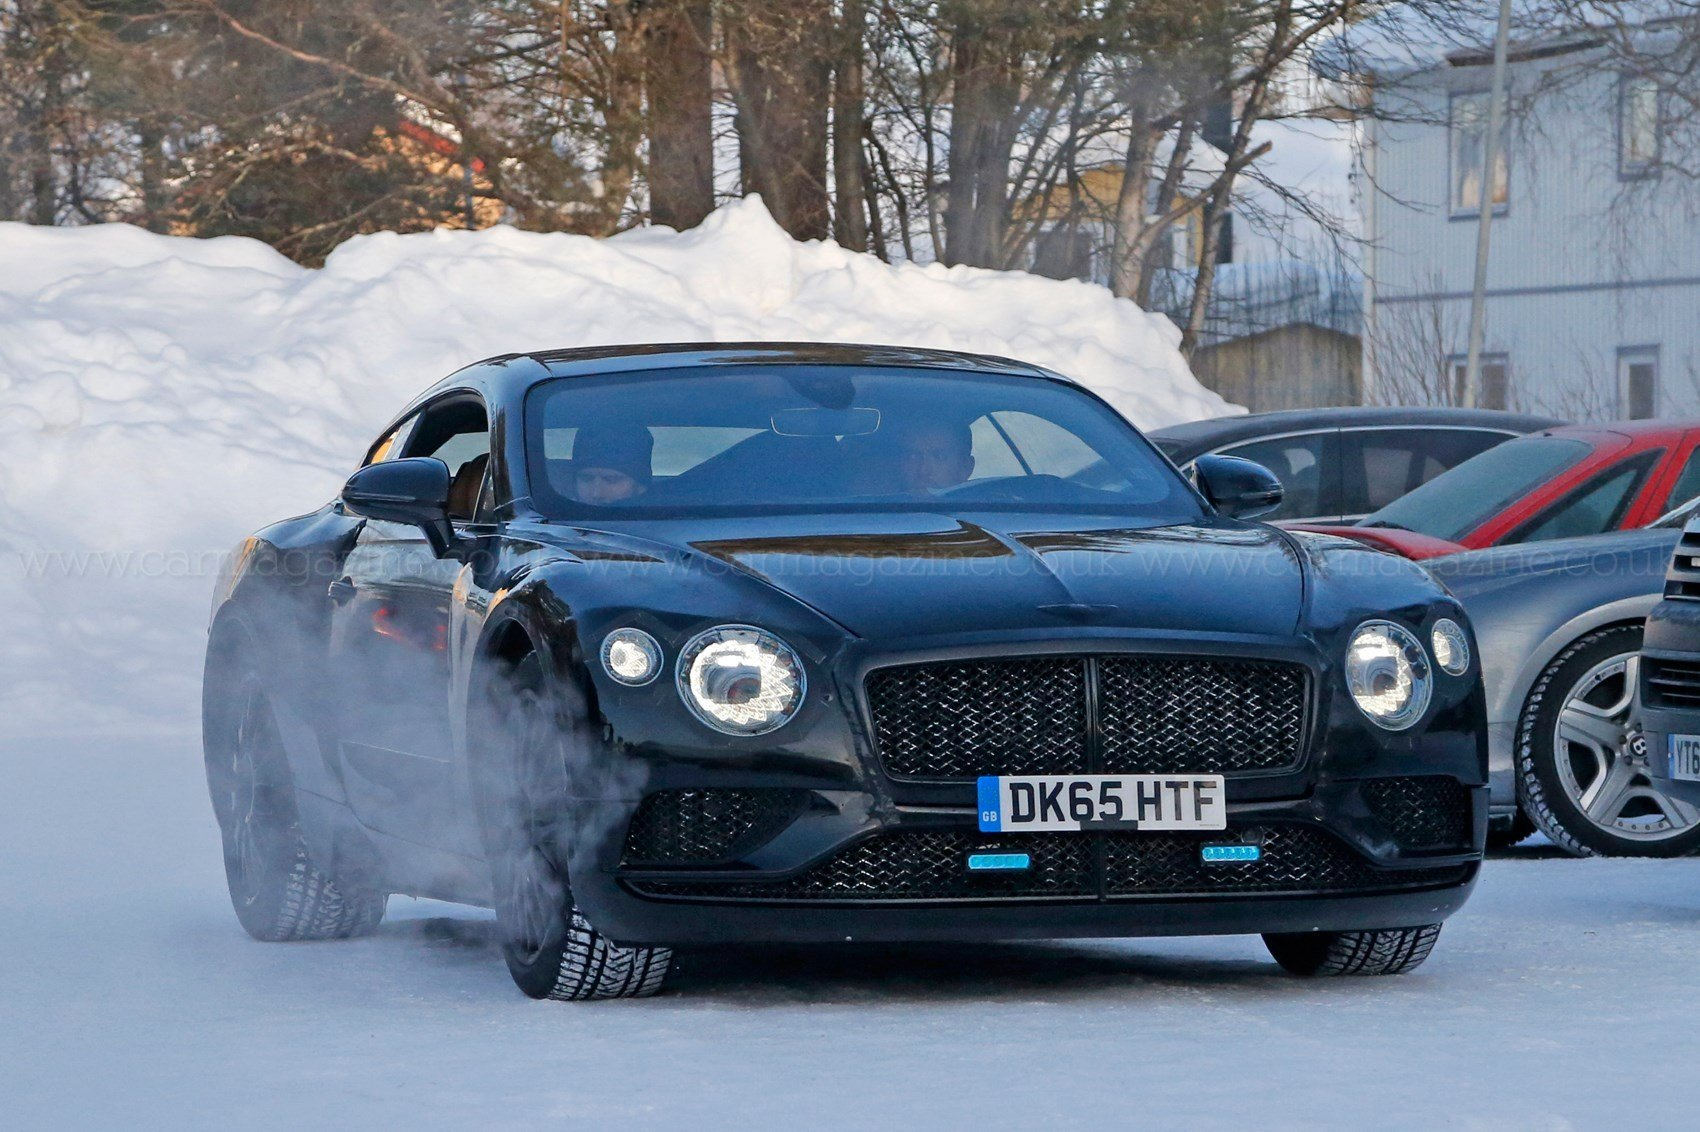 Latest Spy Photos Specs Of New 2018 Bentley Continental Gt Car Free Download